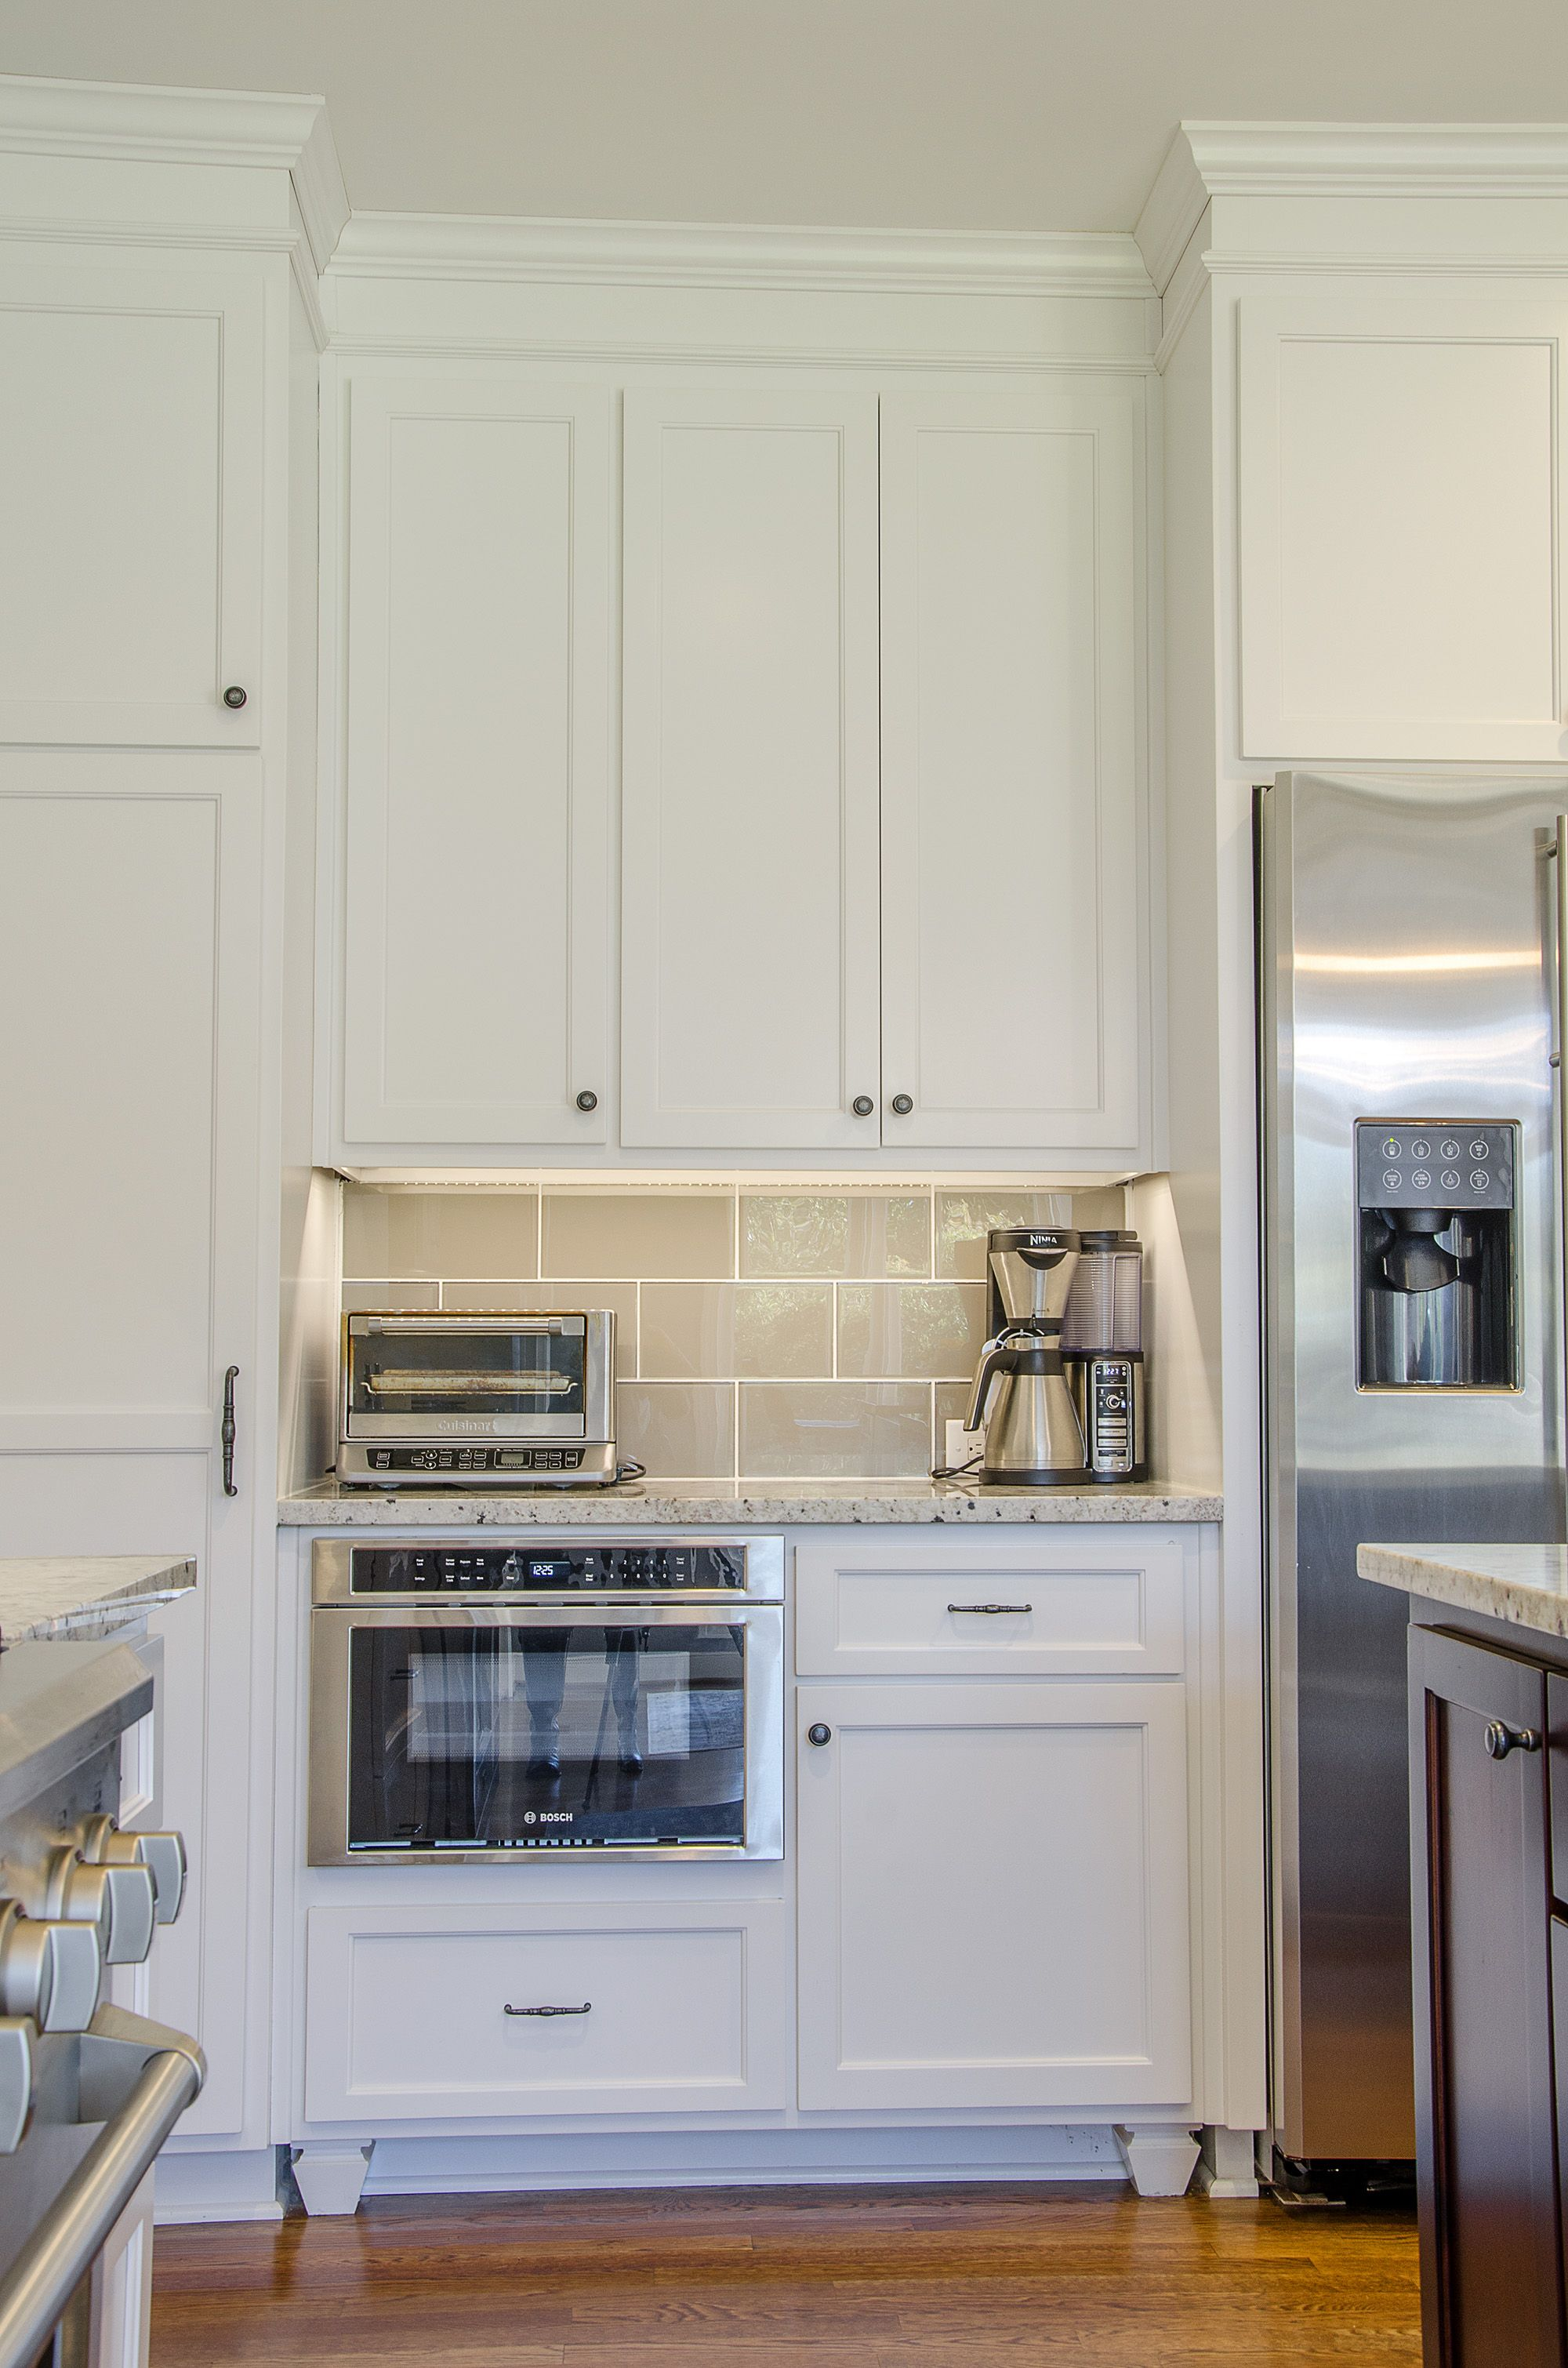 Floor to ceiling custom white kitchen cabinets with stainless steel